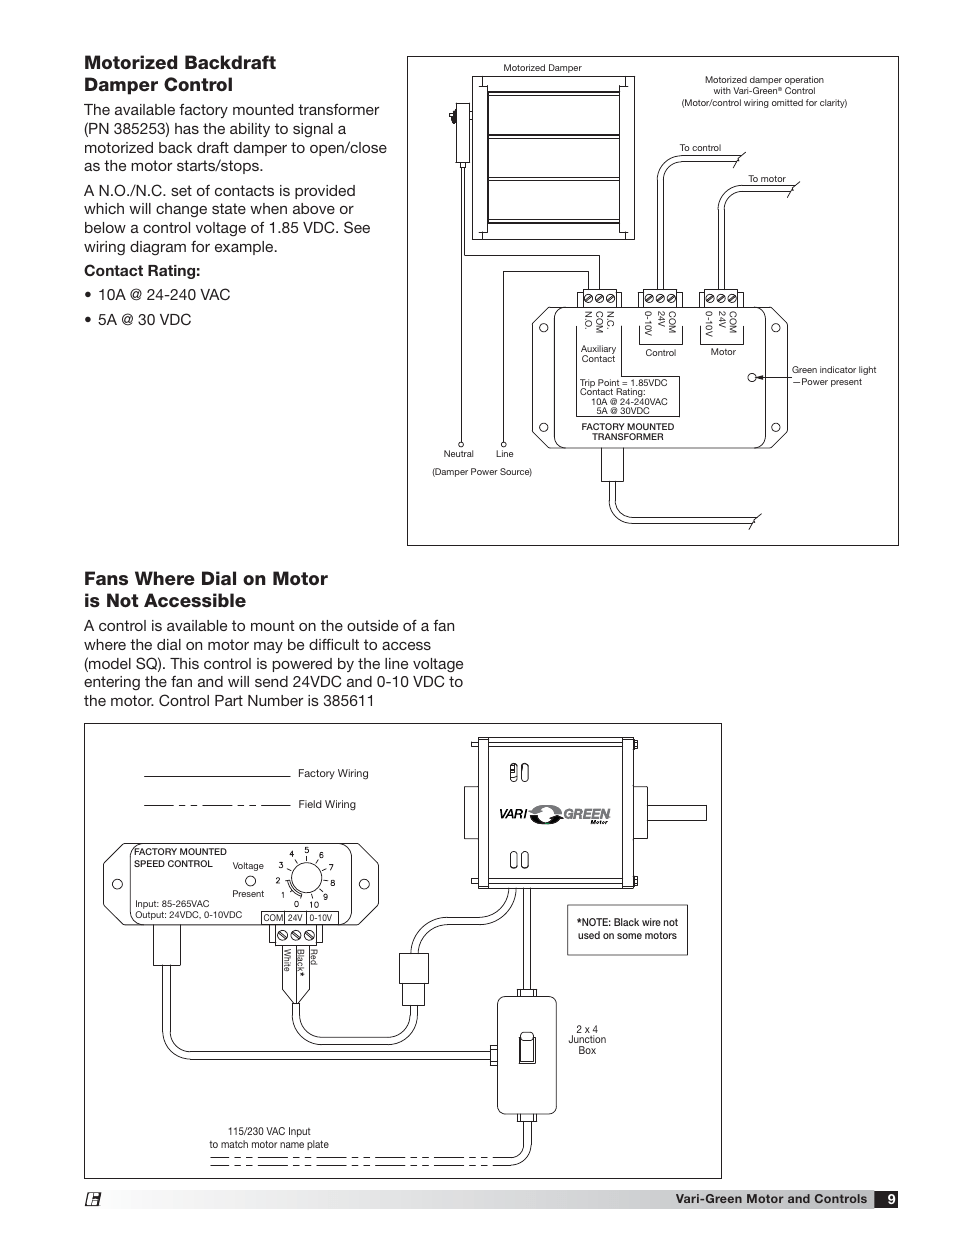 medium resolution of motorized backdraft damper control fans where dial on motor is not accessible greenheck vari green motor iom 473681 user manual page 9 12